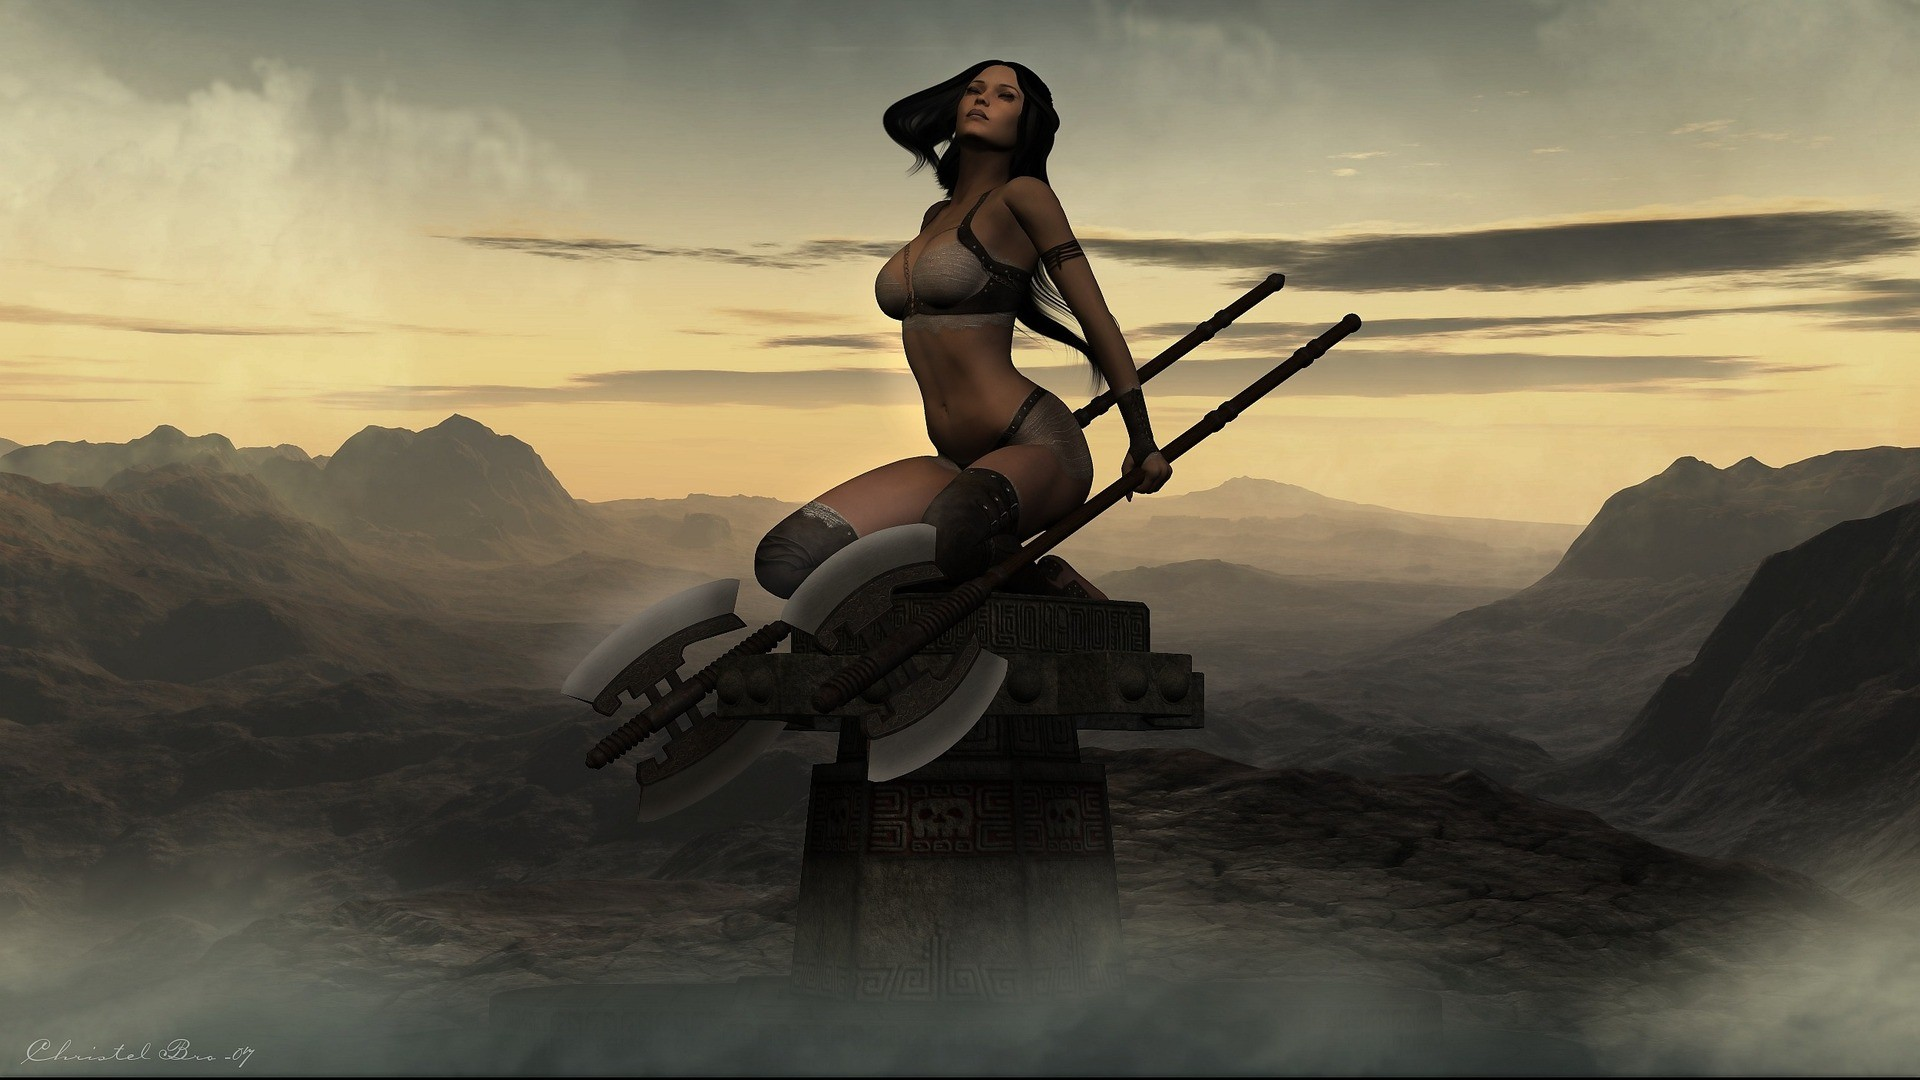 1136 Women Warrior HD Wallpapers   Backgrounds – Wallpaper Abyss – Page 10